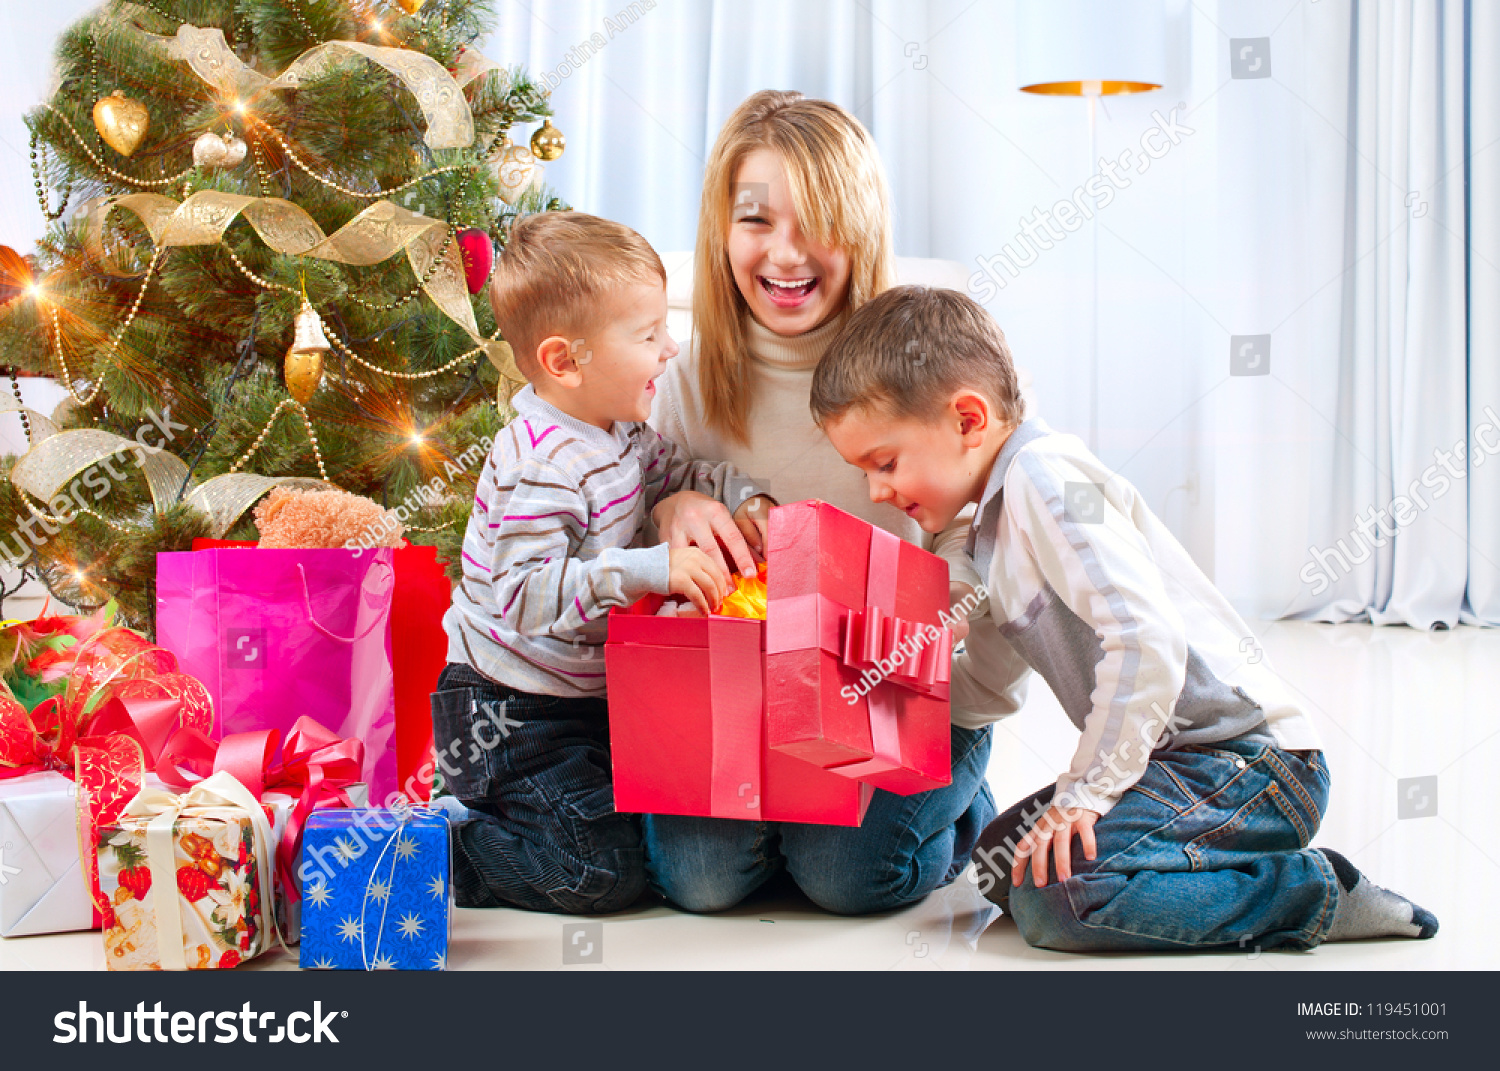 Christmas Kids Happy Children Opening Gifts Stock Photo (Edit Now ...